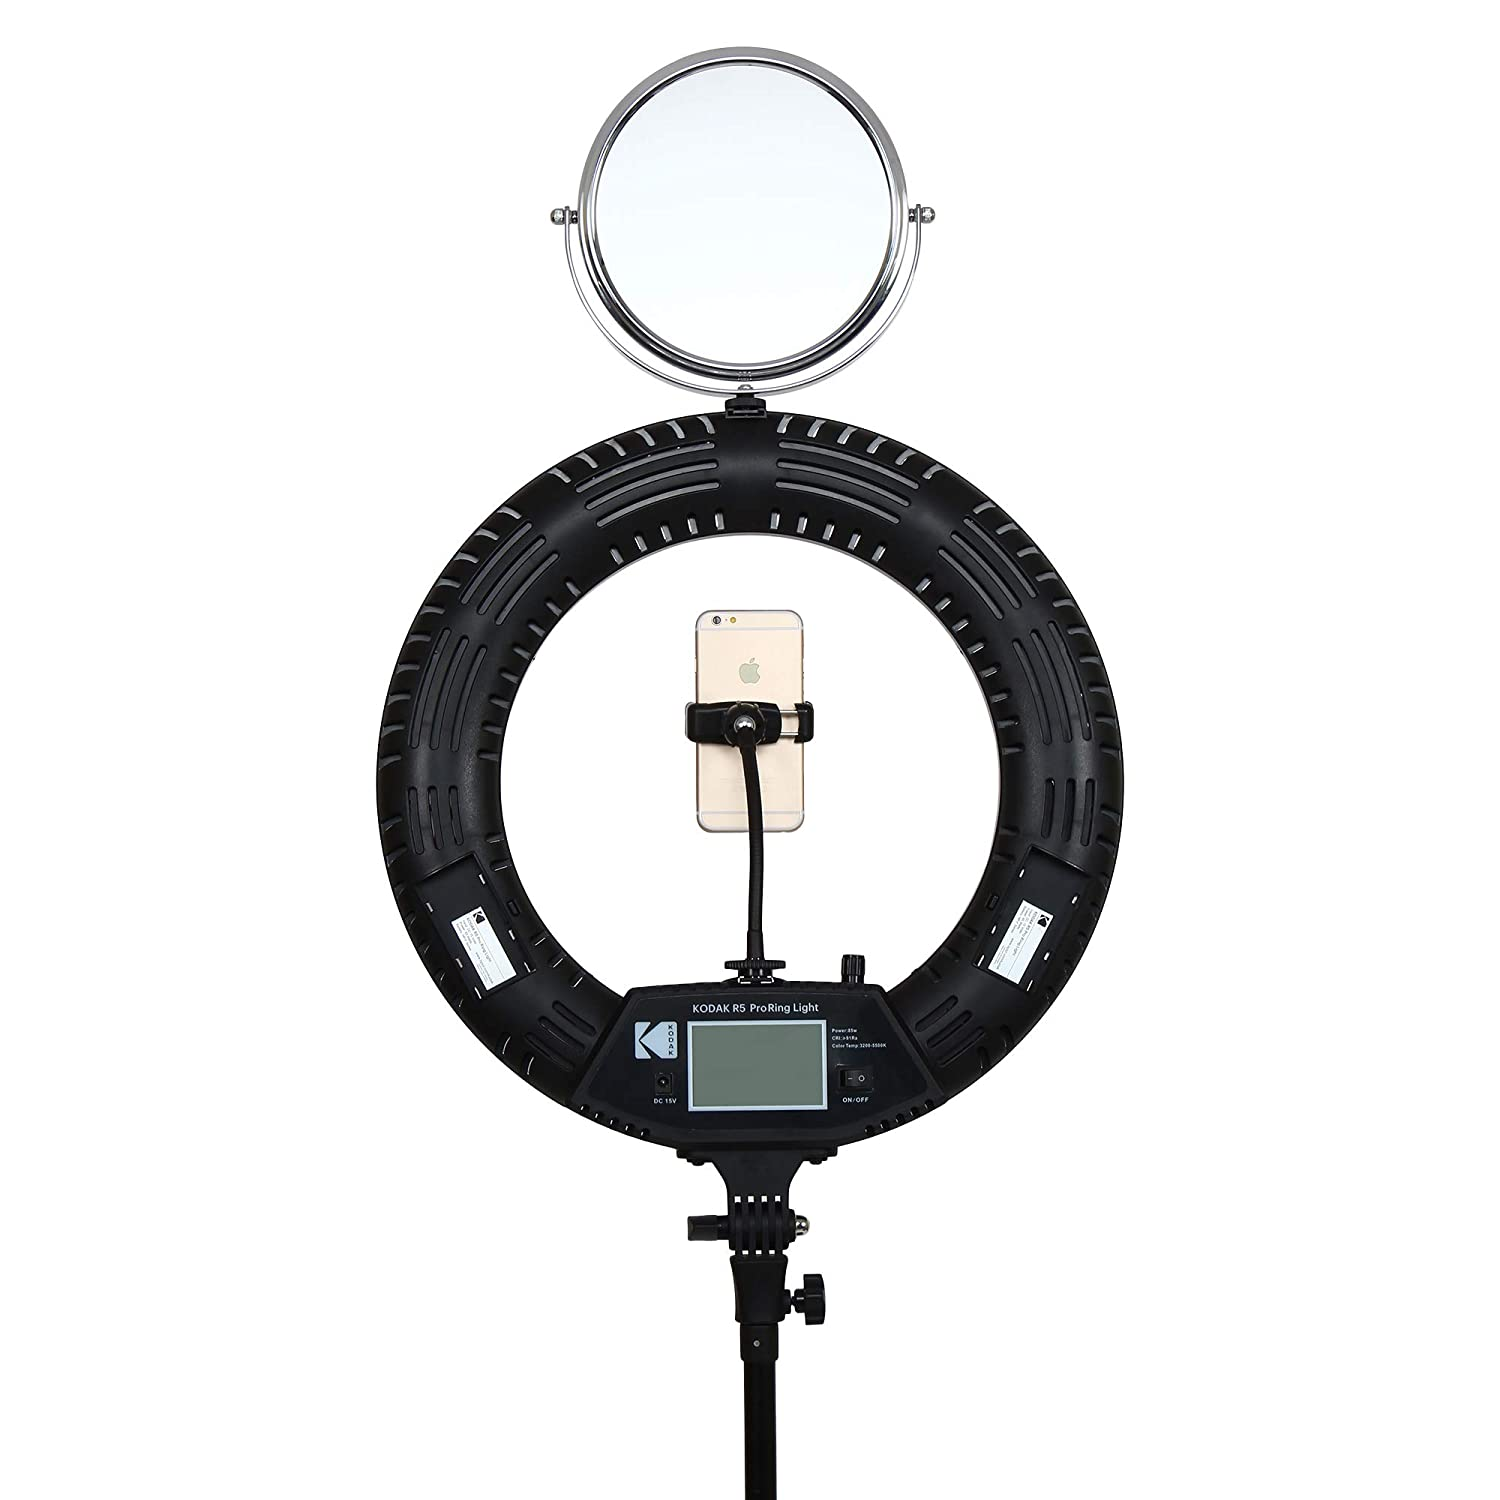 "KODAK R5 Pro 18"" Ring Light with LCD Display and Remote"